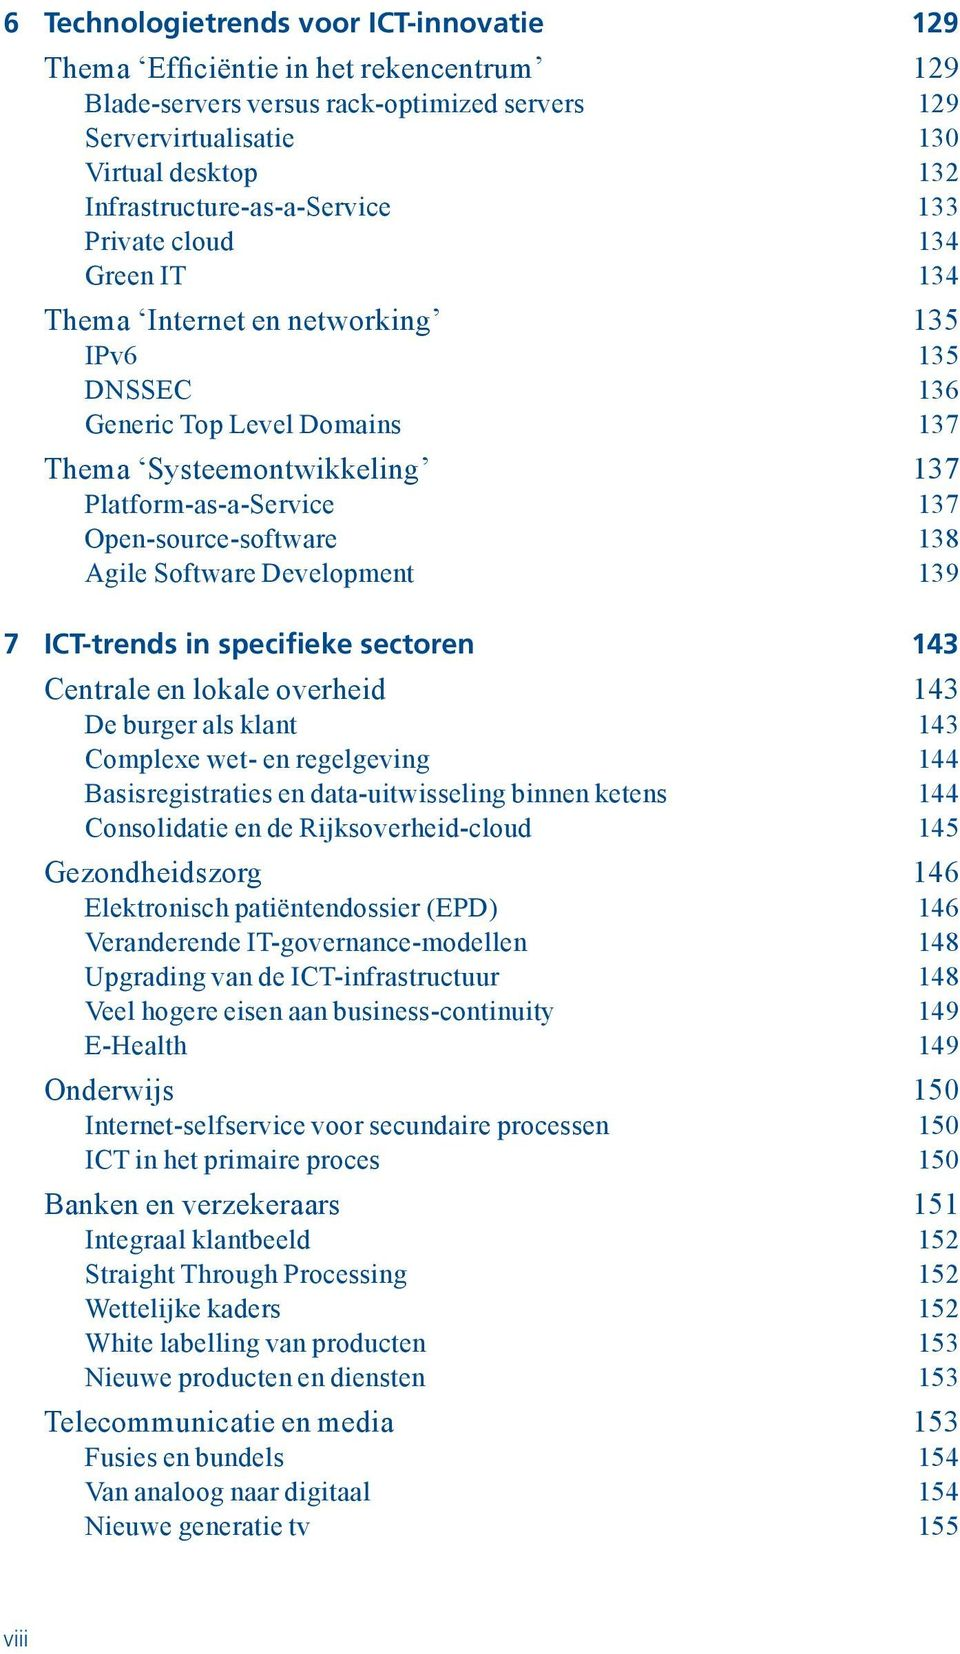 137 Open-source-software 138 Agile Software Development 139 7 ICT-trends in specifieke sectoren 143 Centrale en lokale overheid 143 De burger als klant 143 Complexe wet- en regelgeving 144